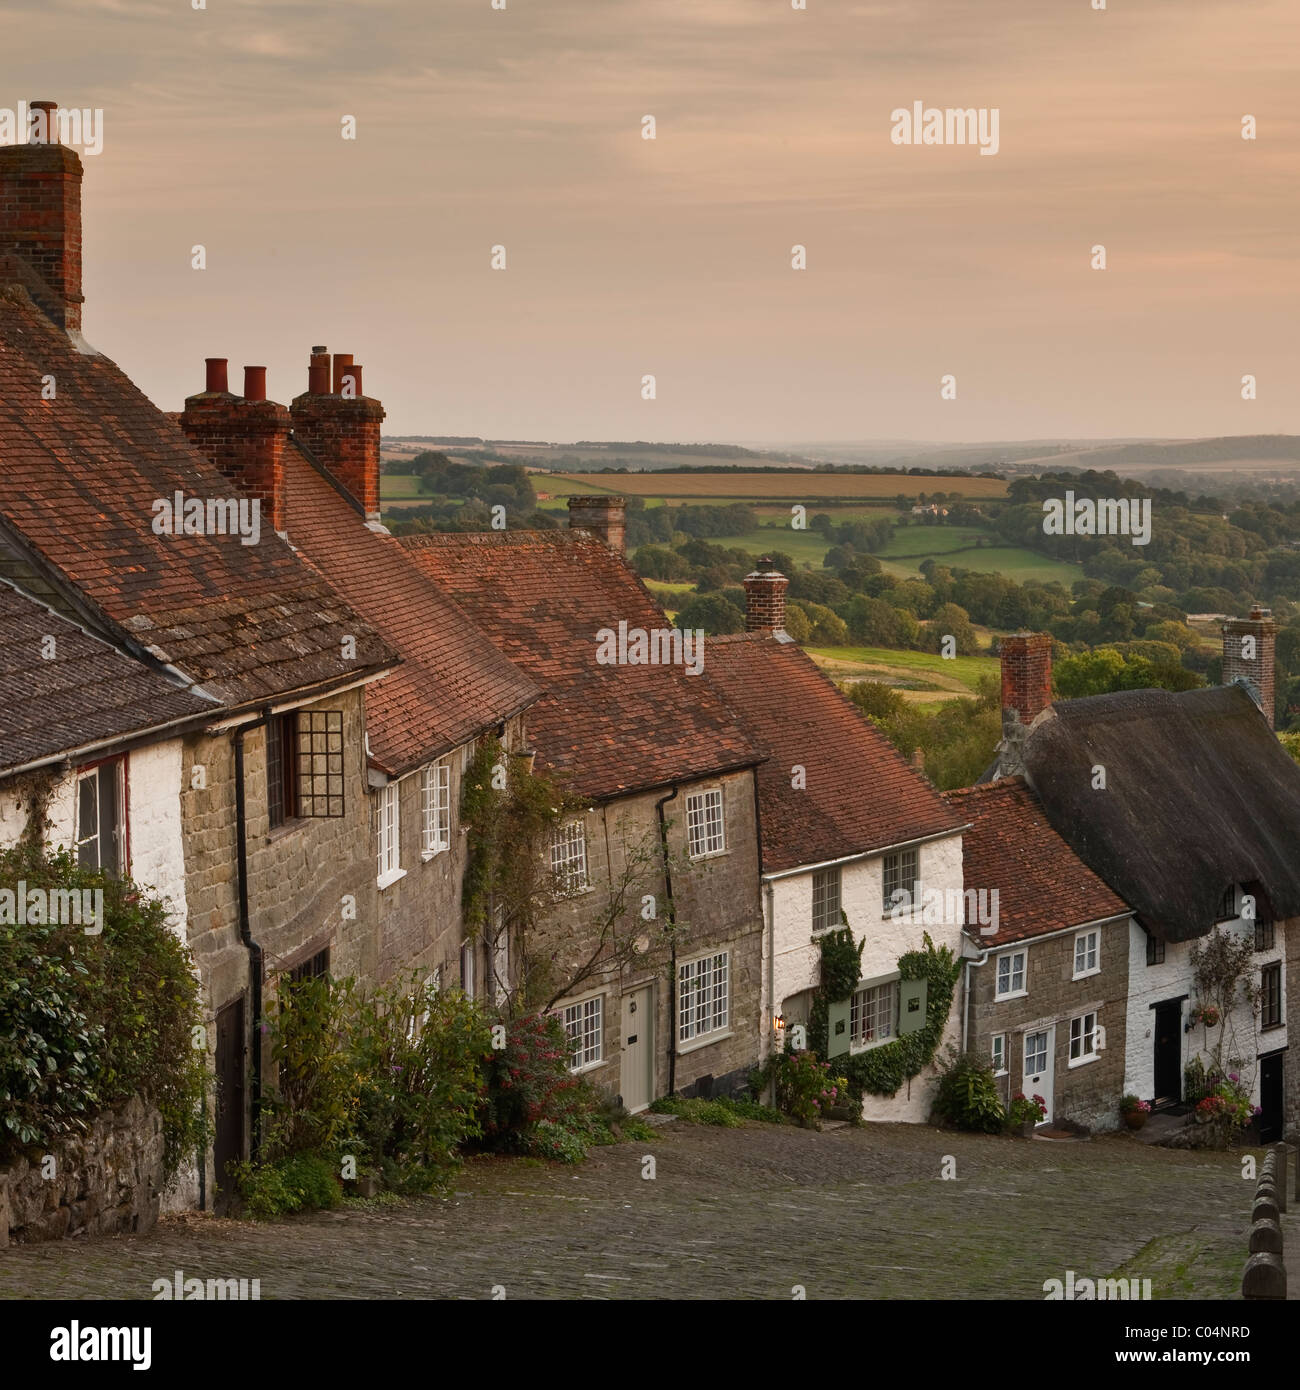 A warm end to a late summer's day at Gold Hill in Shaftesbury Dorset. Old England at its best. - Stock Image